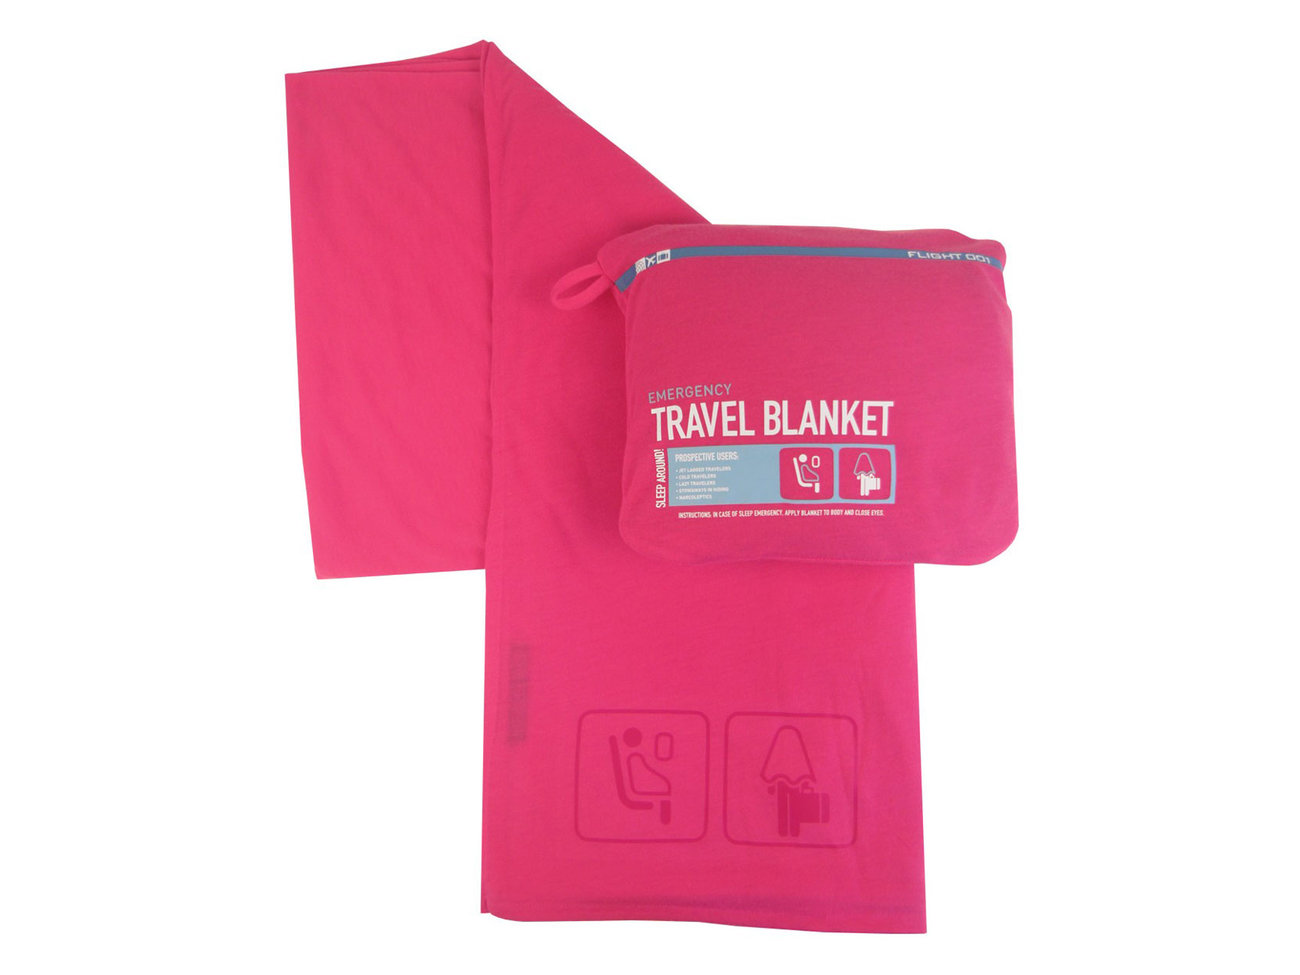 Emergency-Travel-Flight-Blanket-Road-Sleep-PRODUCTS0316.jpg